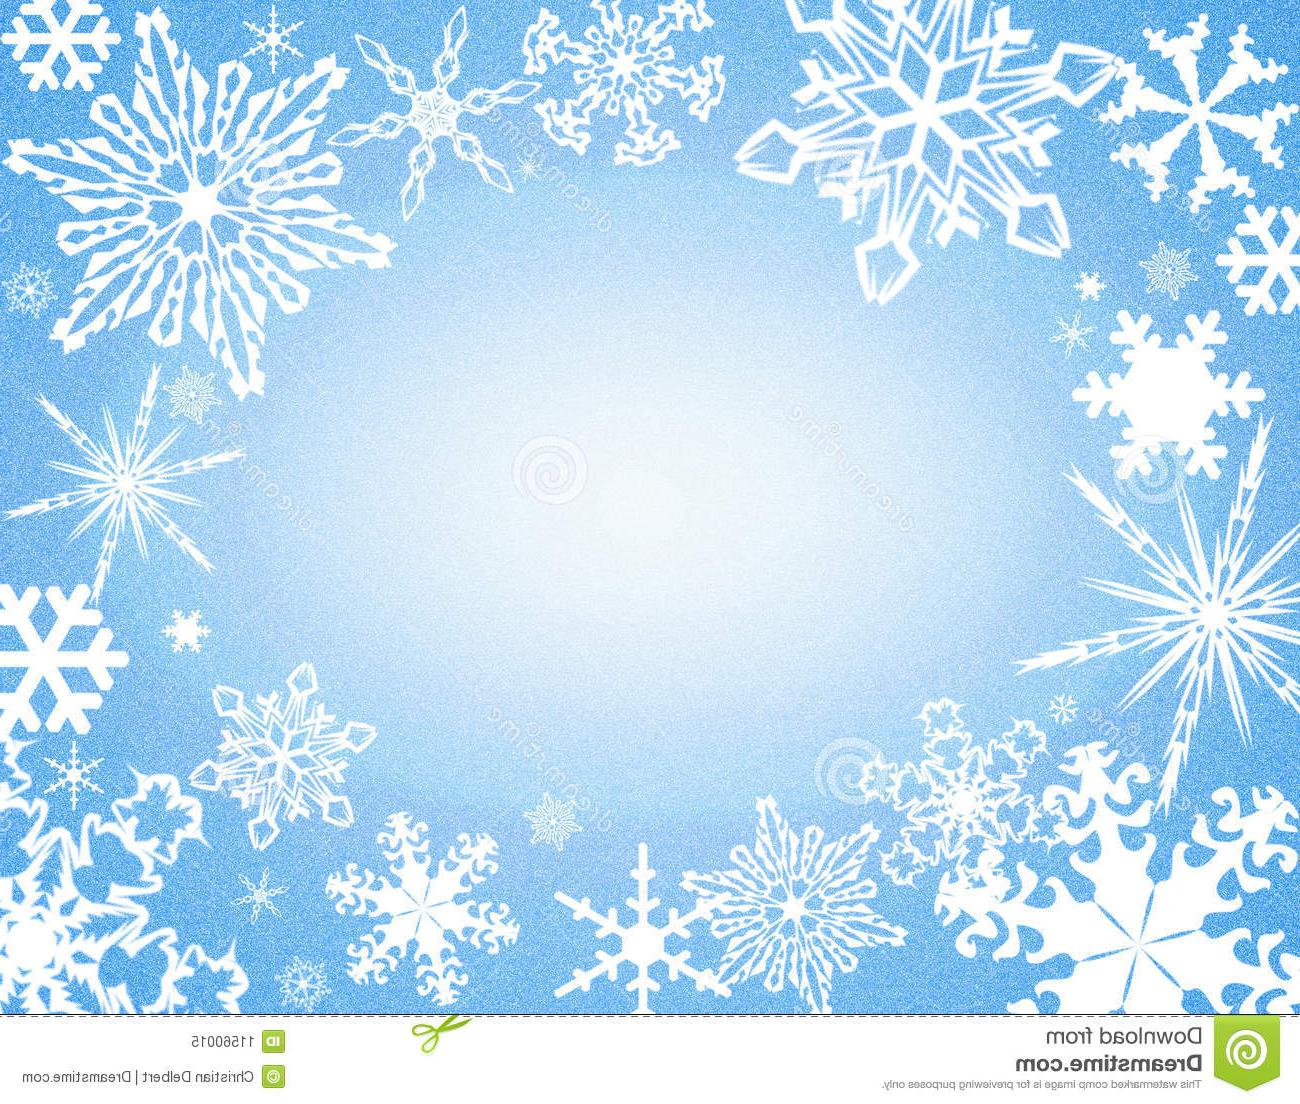 Best HD Blue Snowflake Border Clip Art File Free » Free.